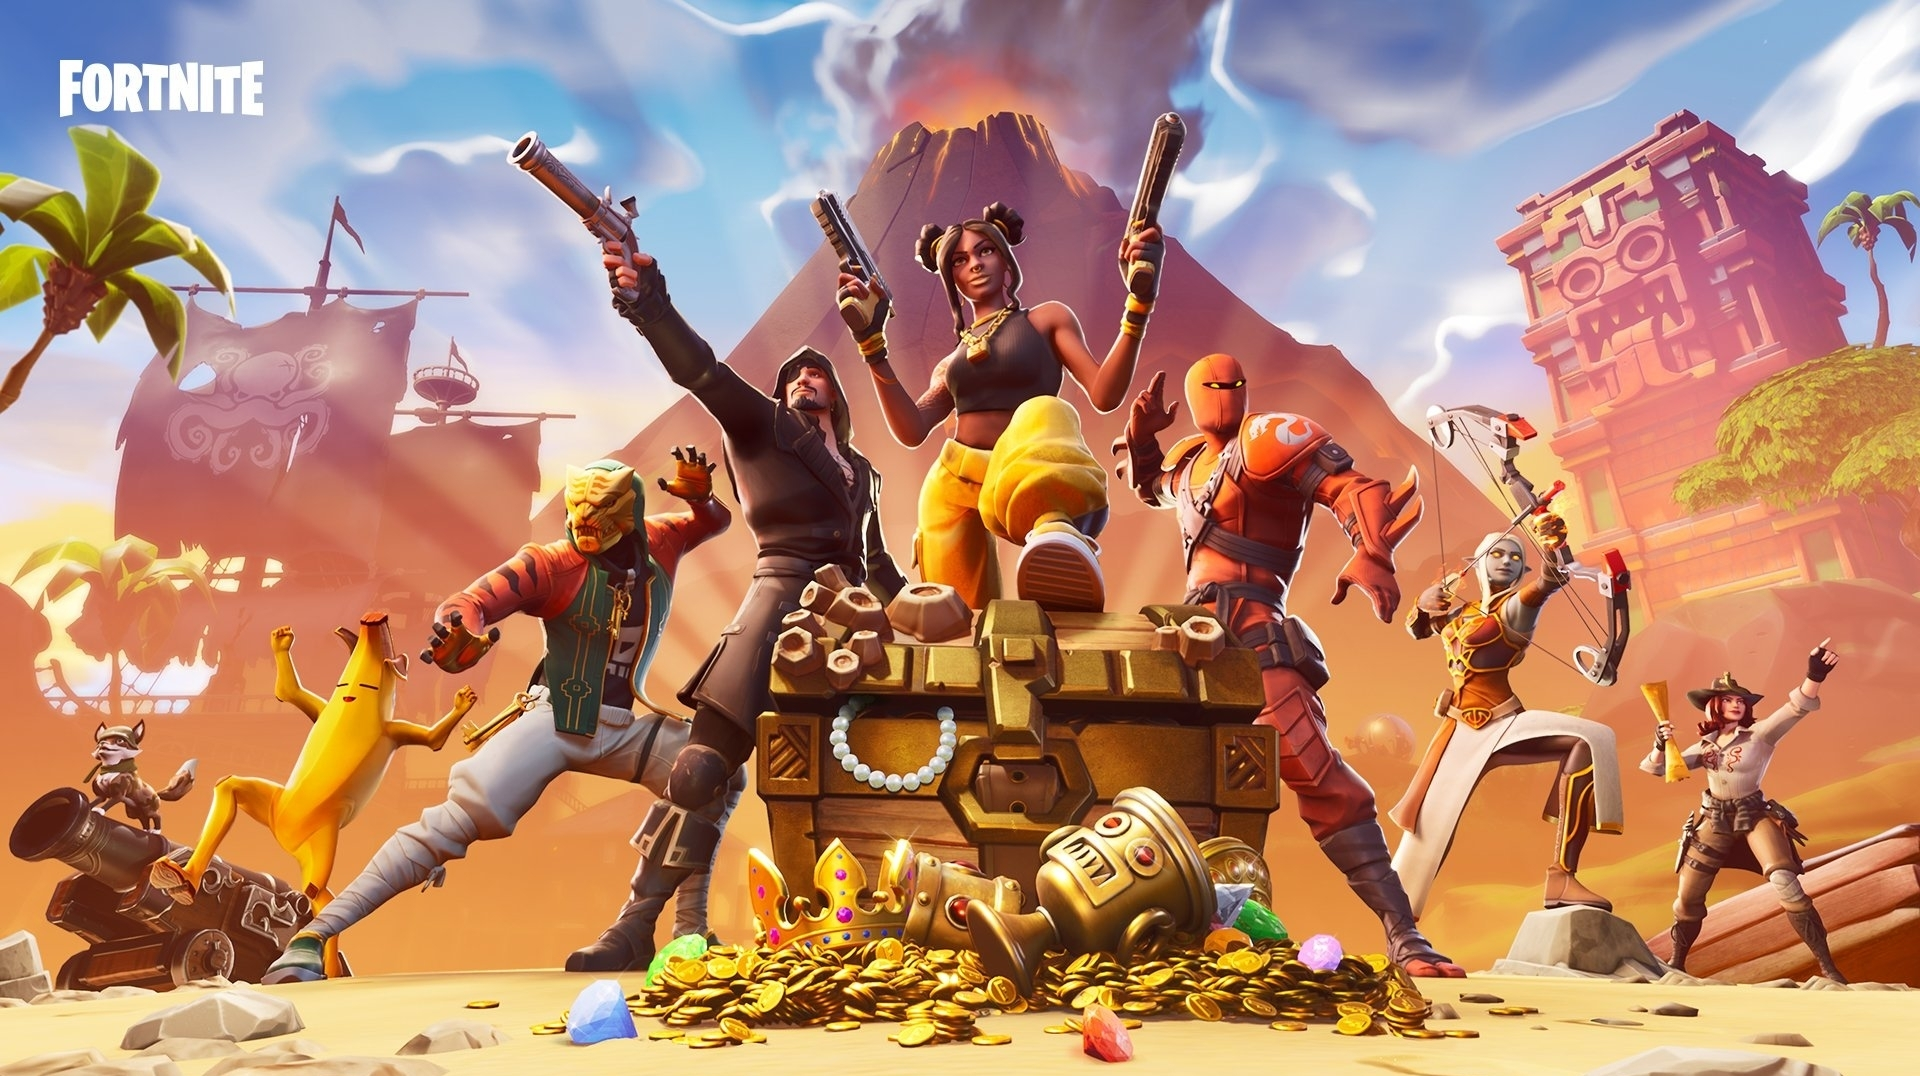 Fortnite Battle Pass Season 6 Tier 100 Fortnite Free No Sign In